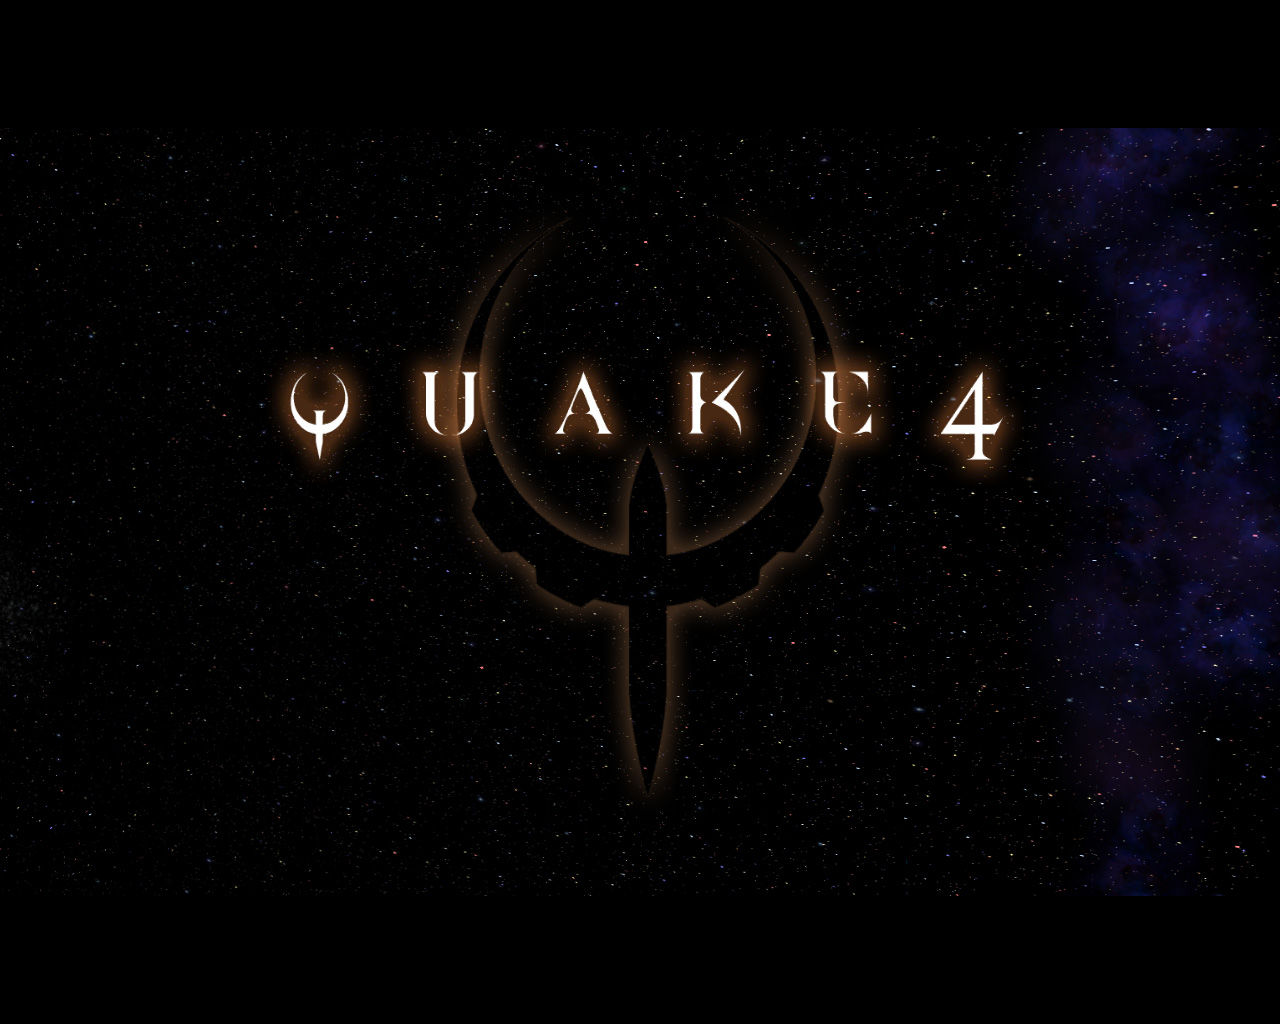 Quake 4 Windows Title Screen.